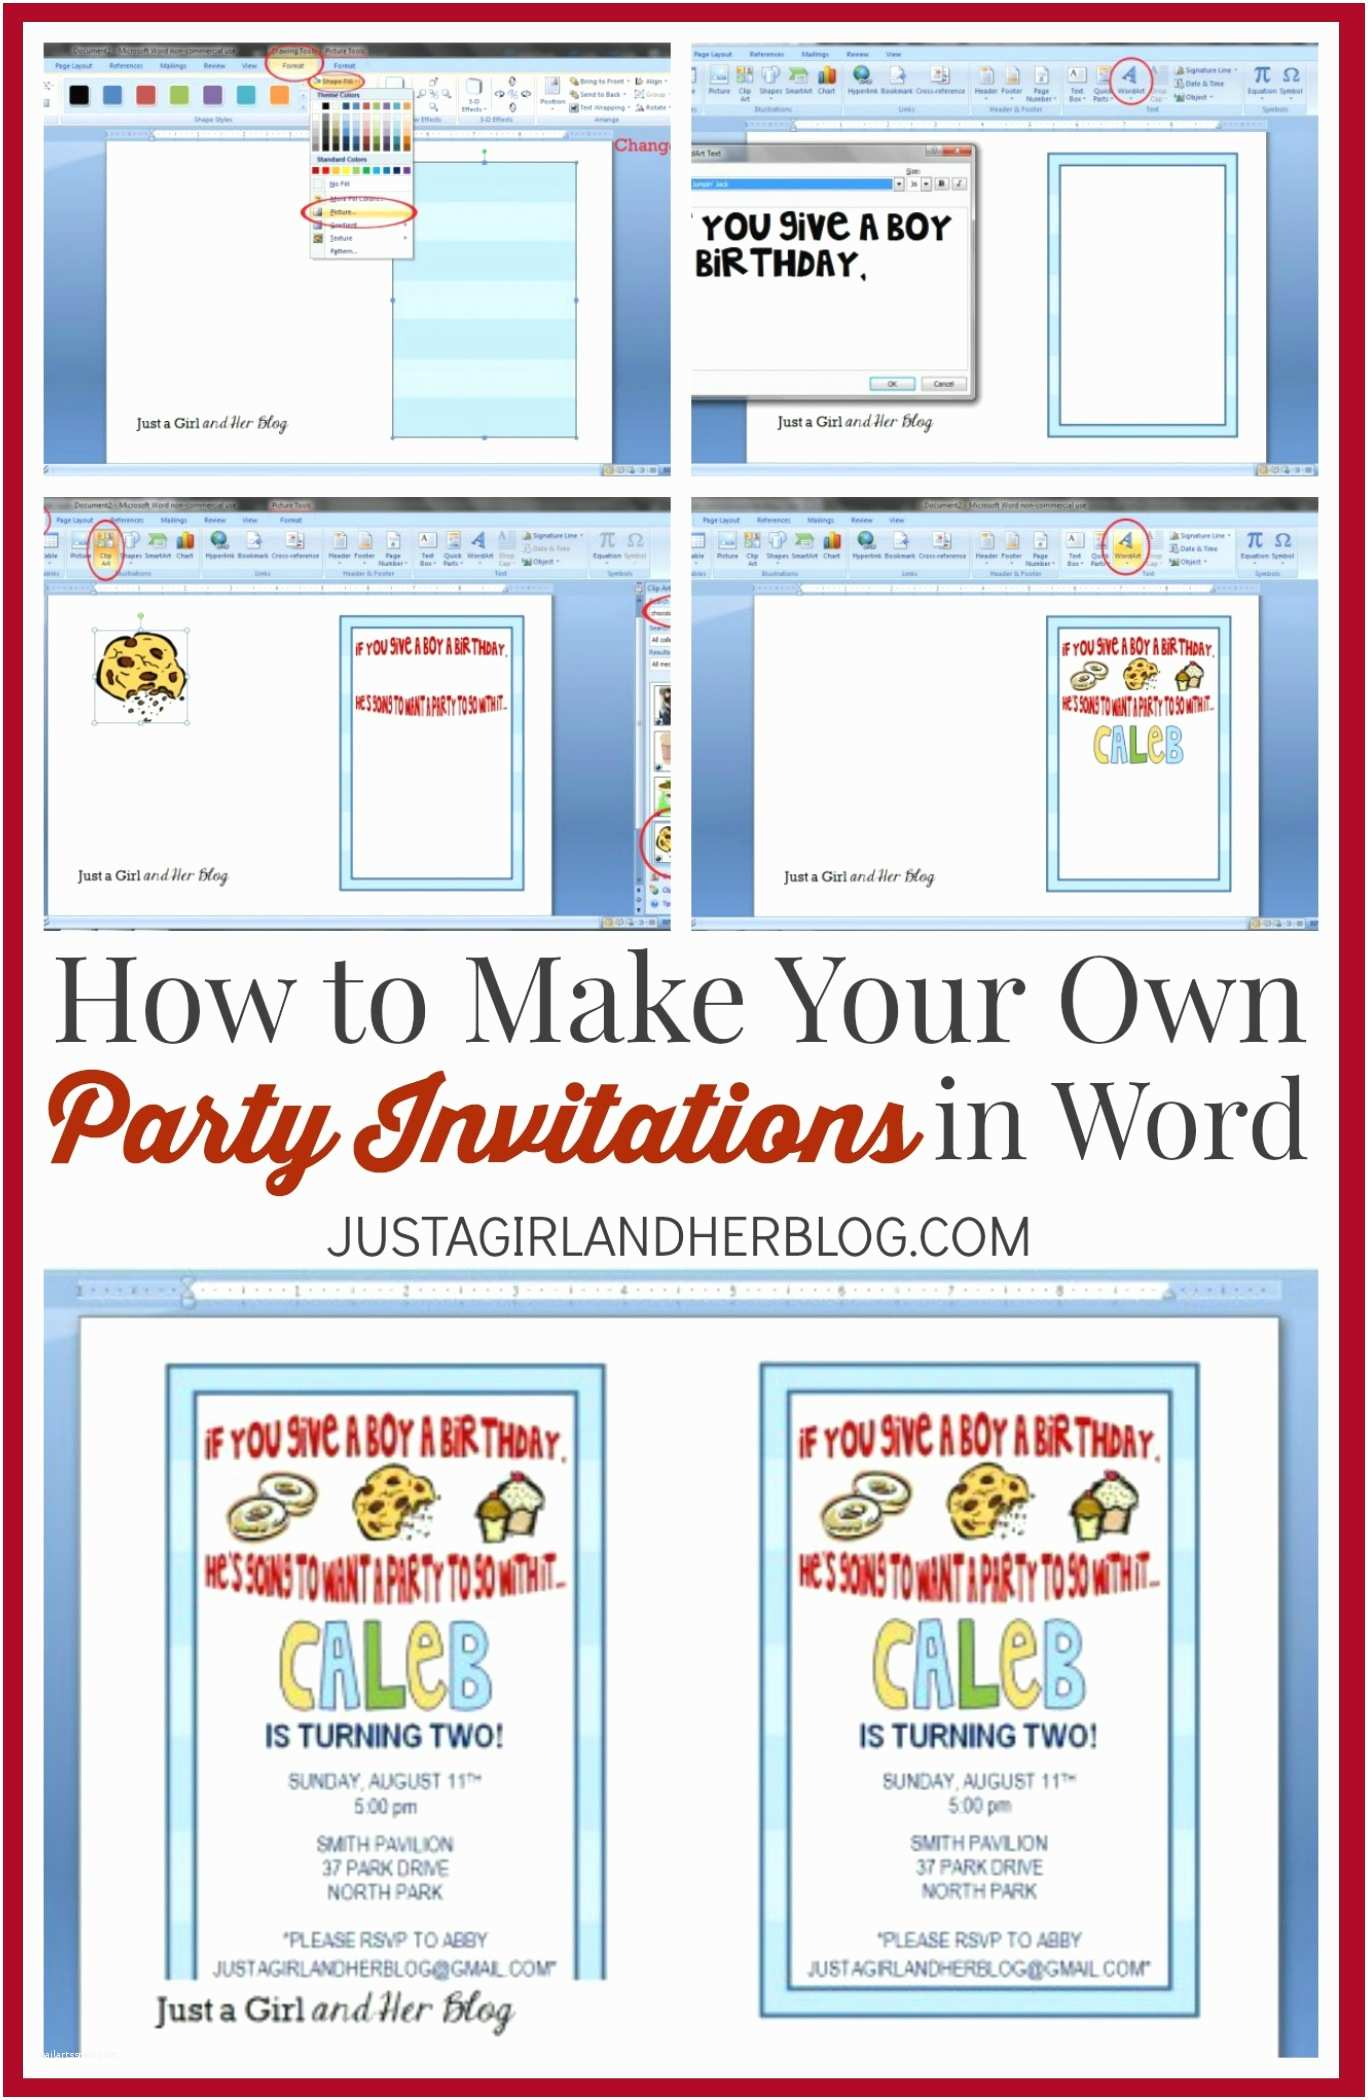 How to Print Your Own Wedding Invitations How to Make Your Own Party Invitations Just A Girl and